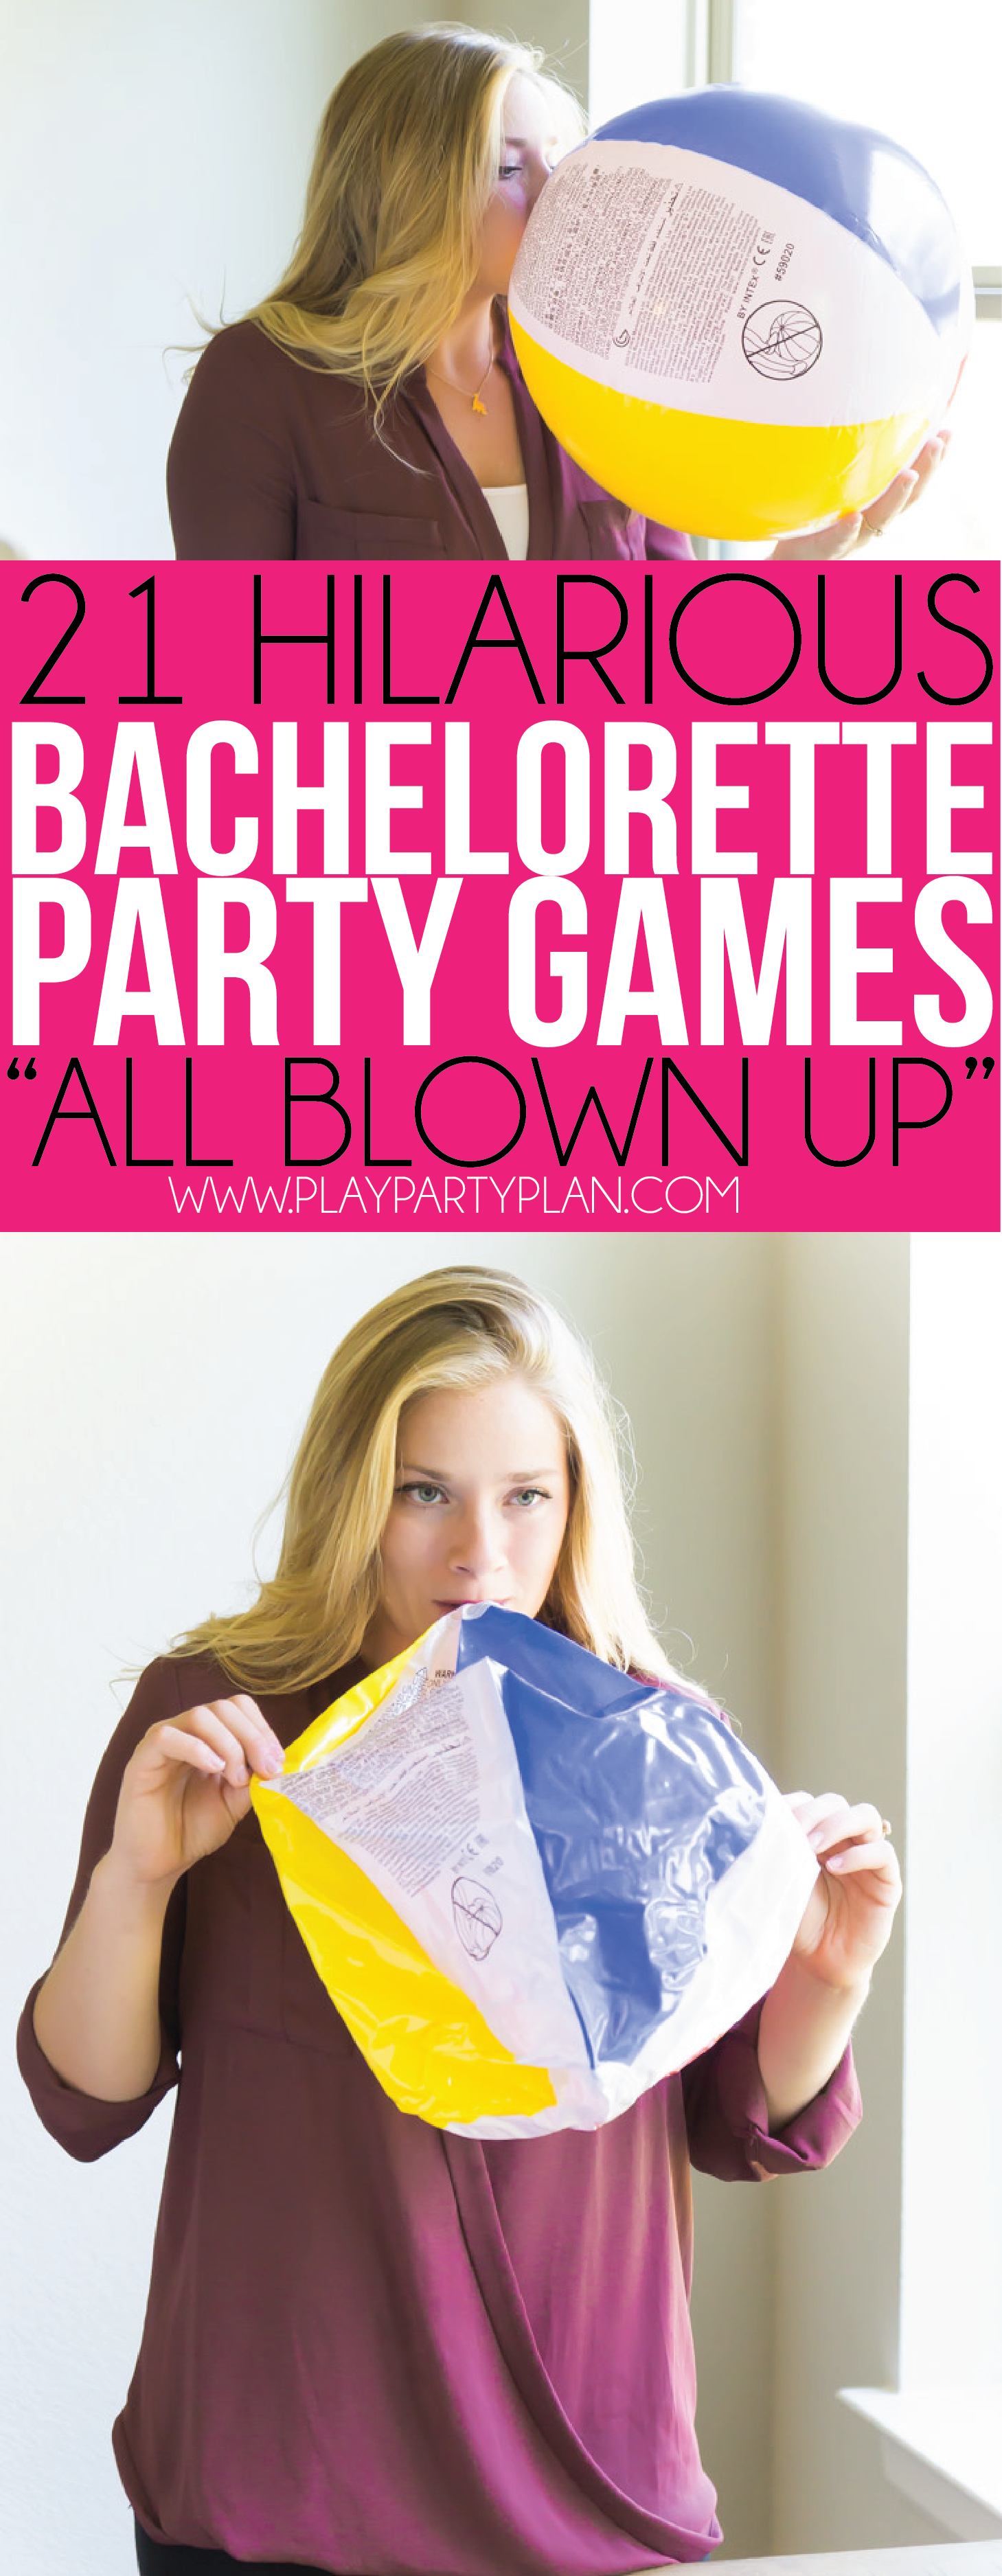 This all blown up game is one of the silliest bachelorette party games